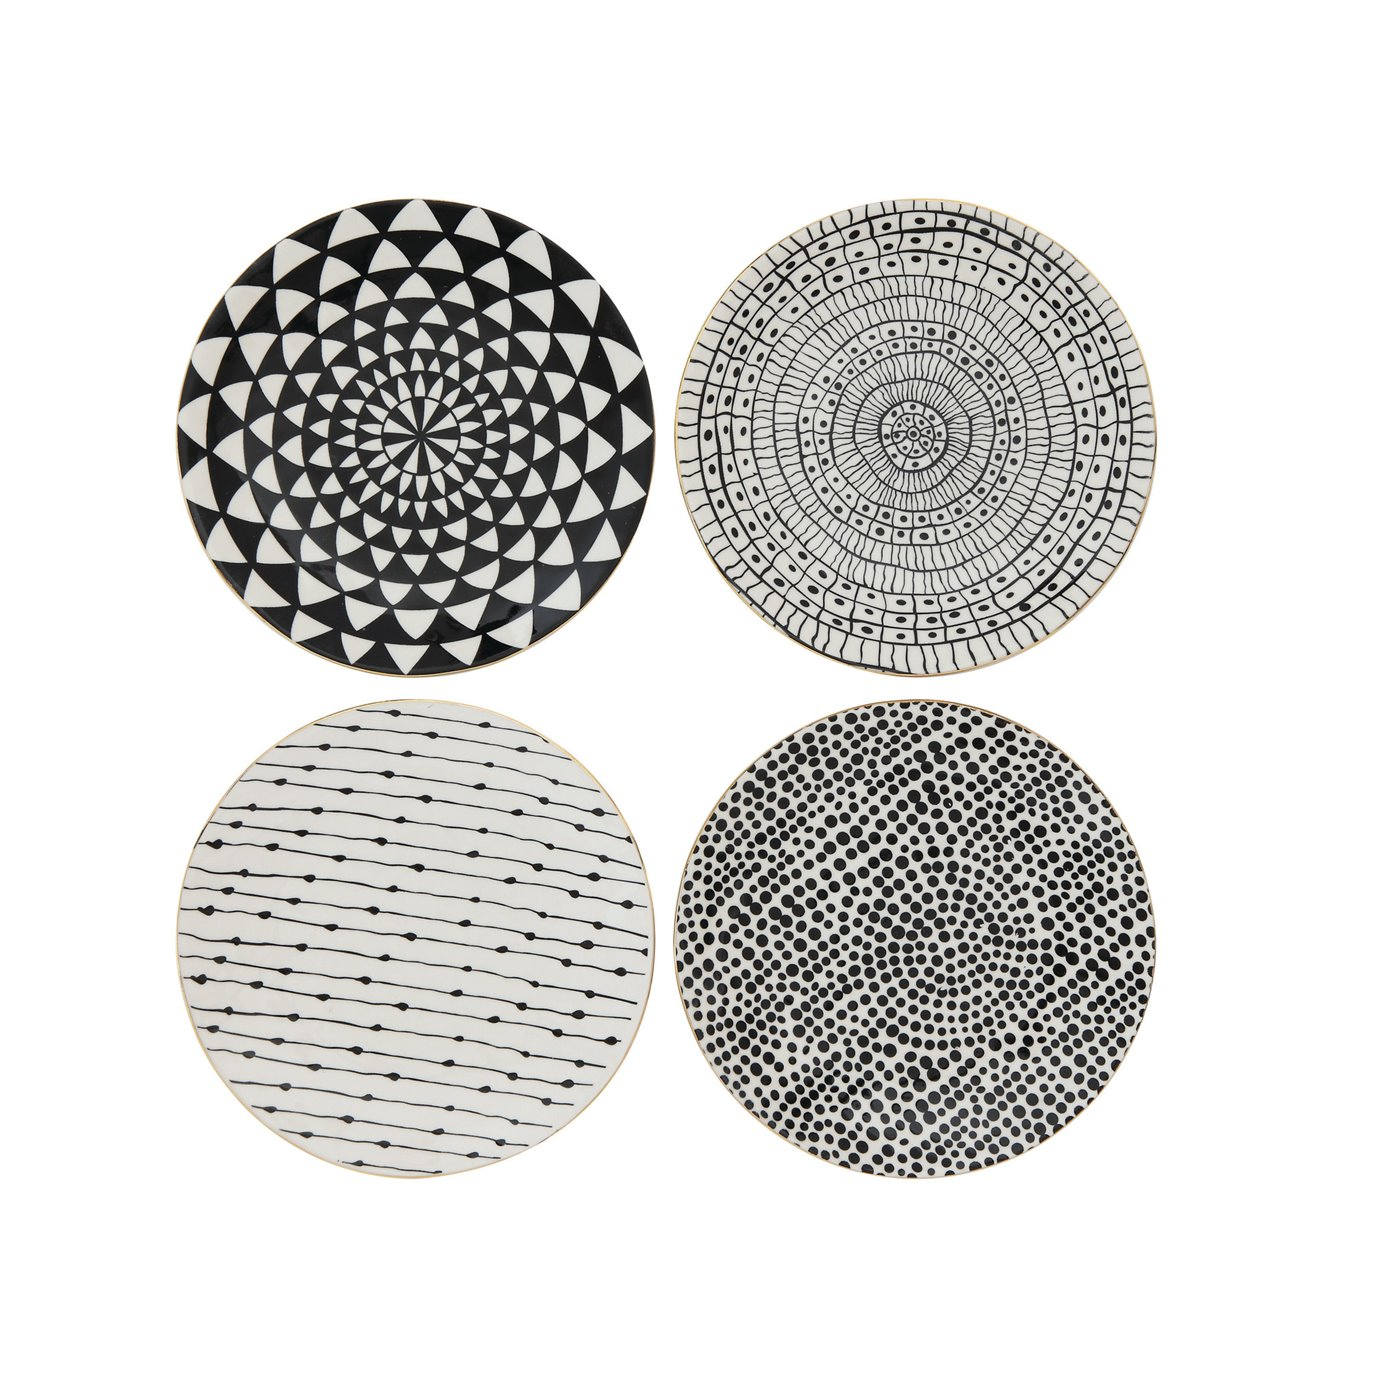 Black & White Stoneware Plate with Gold Electroplating (Set of 4 Designs)